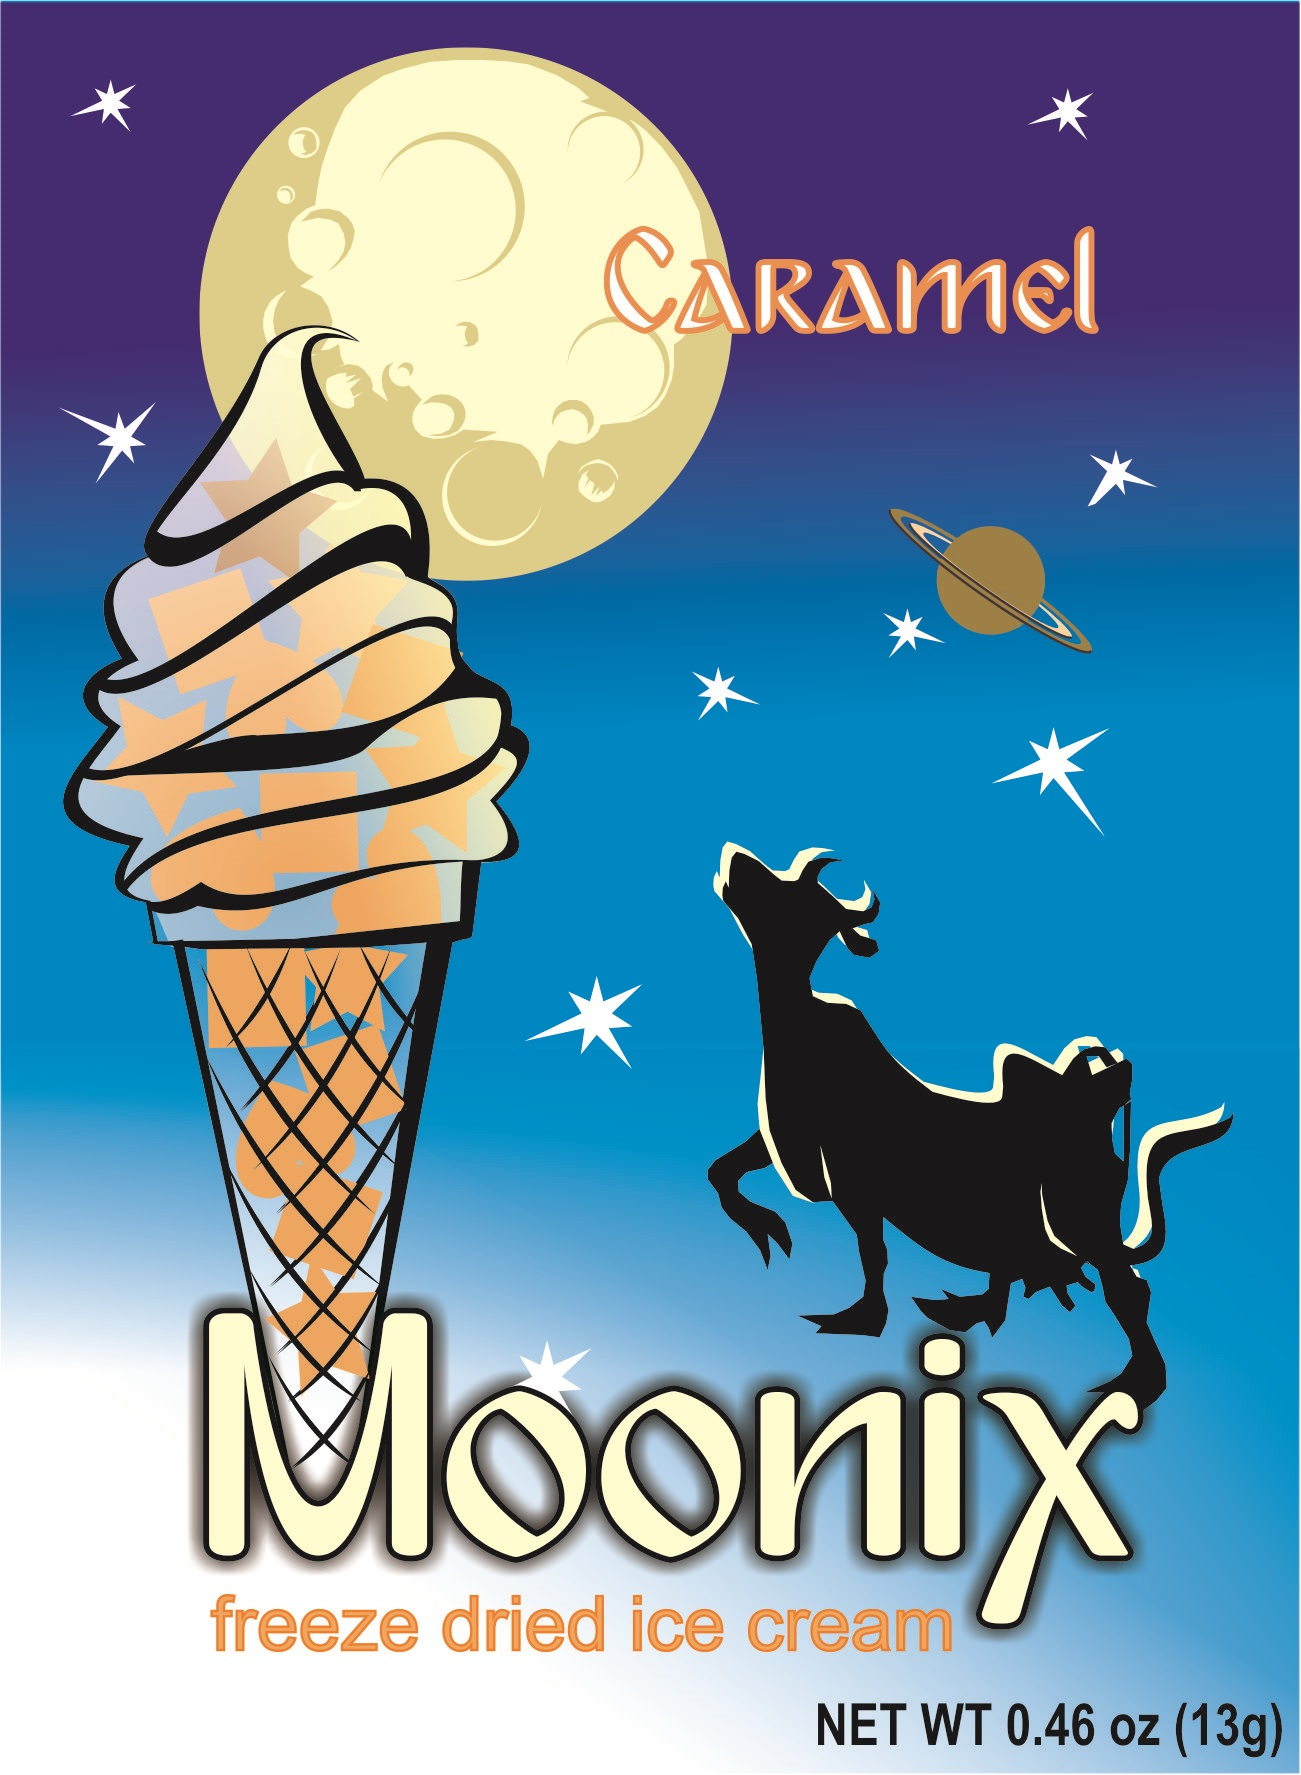 Moonix Freeze Dried Ice Cream Caramel